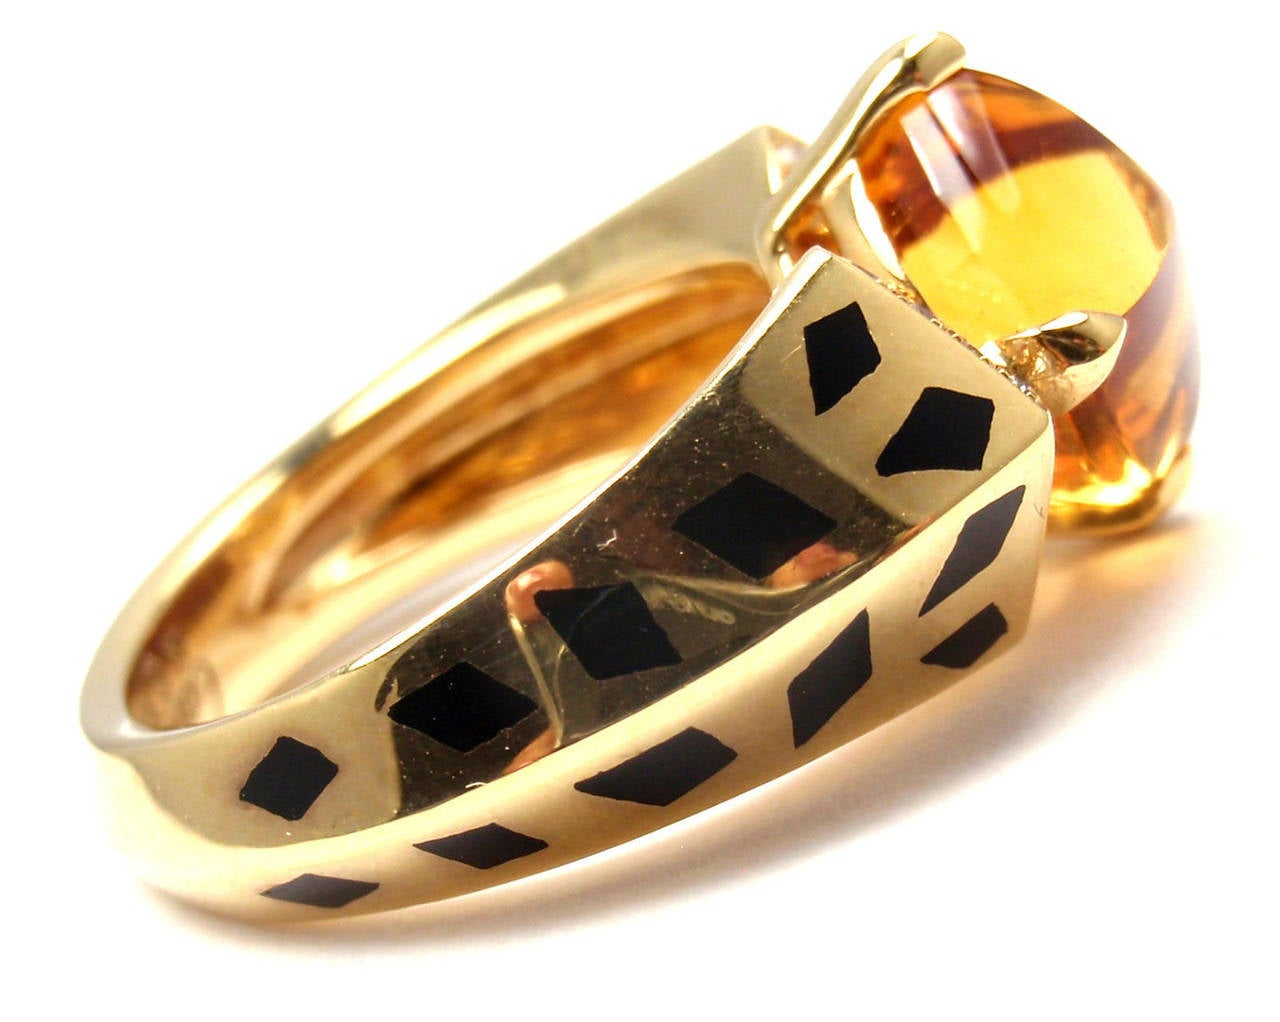 Cartier Panthere Black Lacquer Spot Citrine Diamond Gold Ring In As new Condition For Sale In Southampton, PA